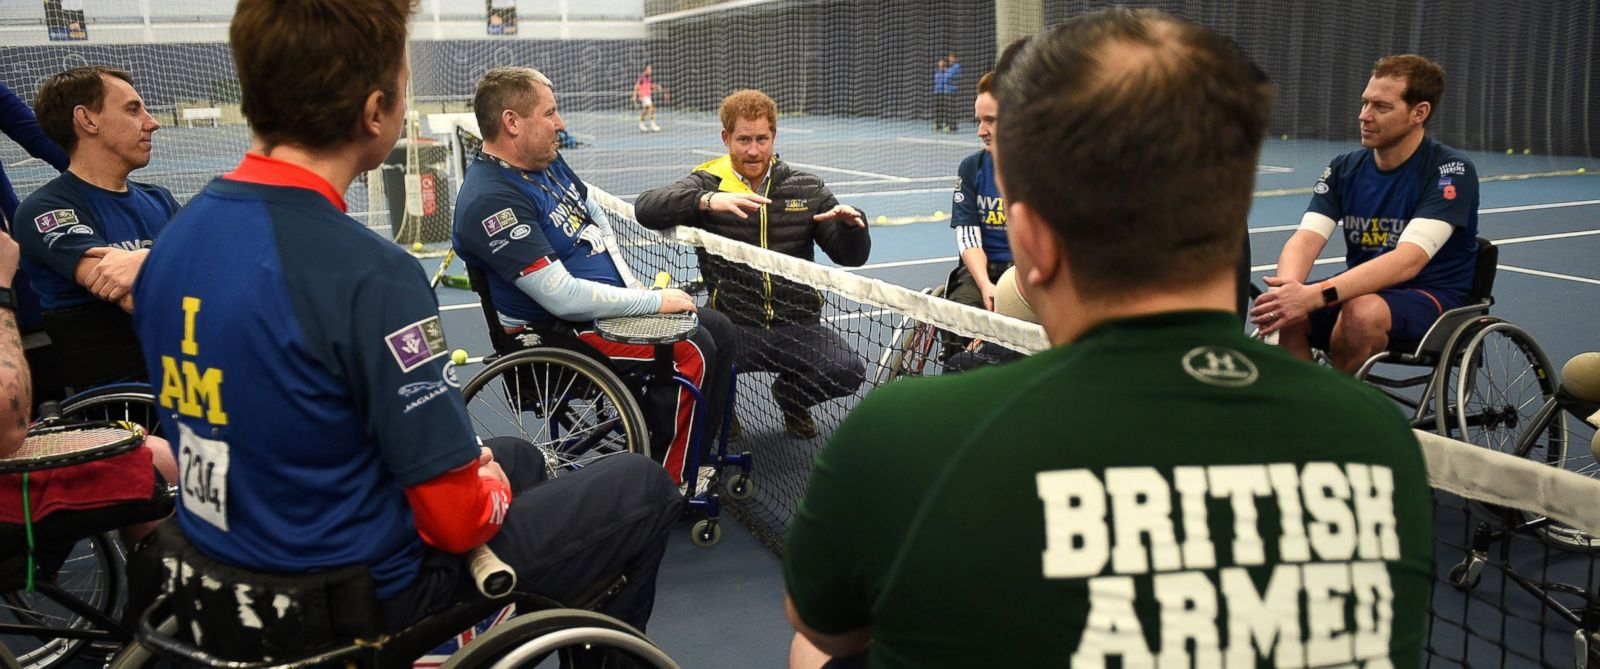 PHOTO: Prince Harry speaks as he attends the Invictus Games Orlando British team trials at the University of Bath on Jan. 29, 2016 in Bath, England.